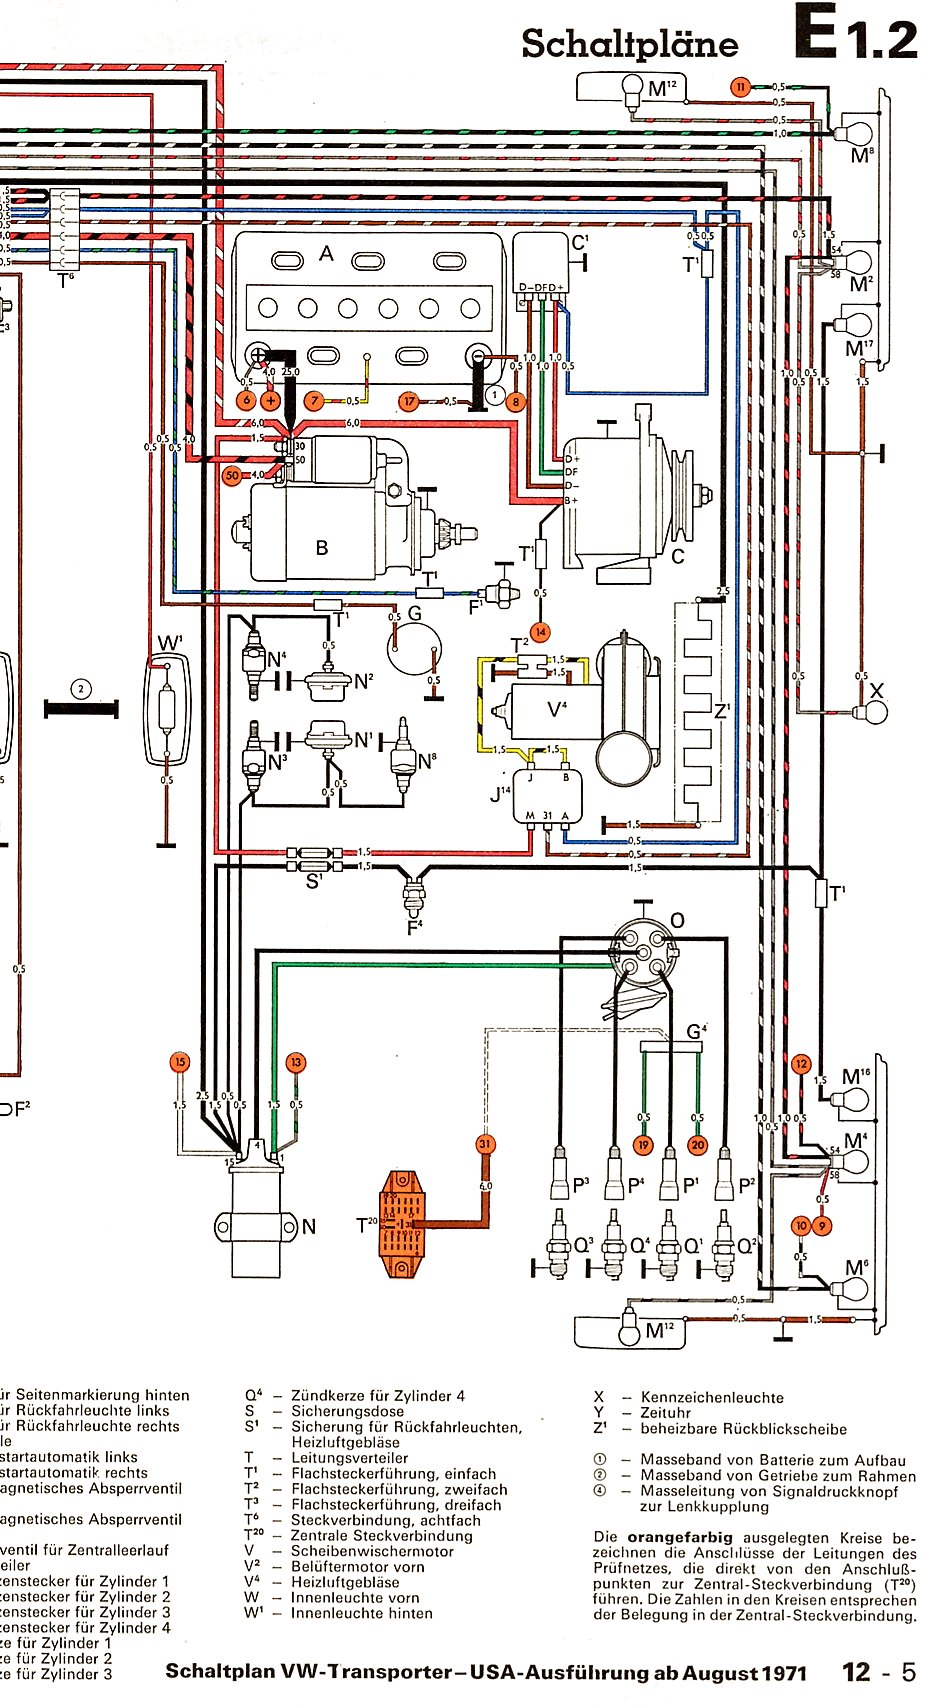 Transporter Usa From August on vw alternator voltage regulator wiring diagram